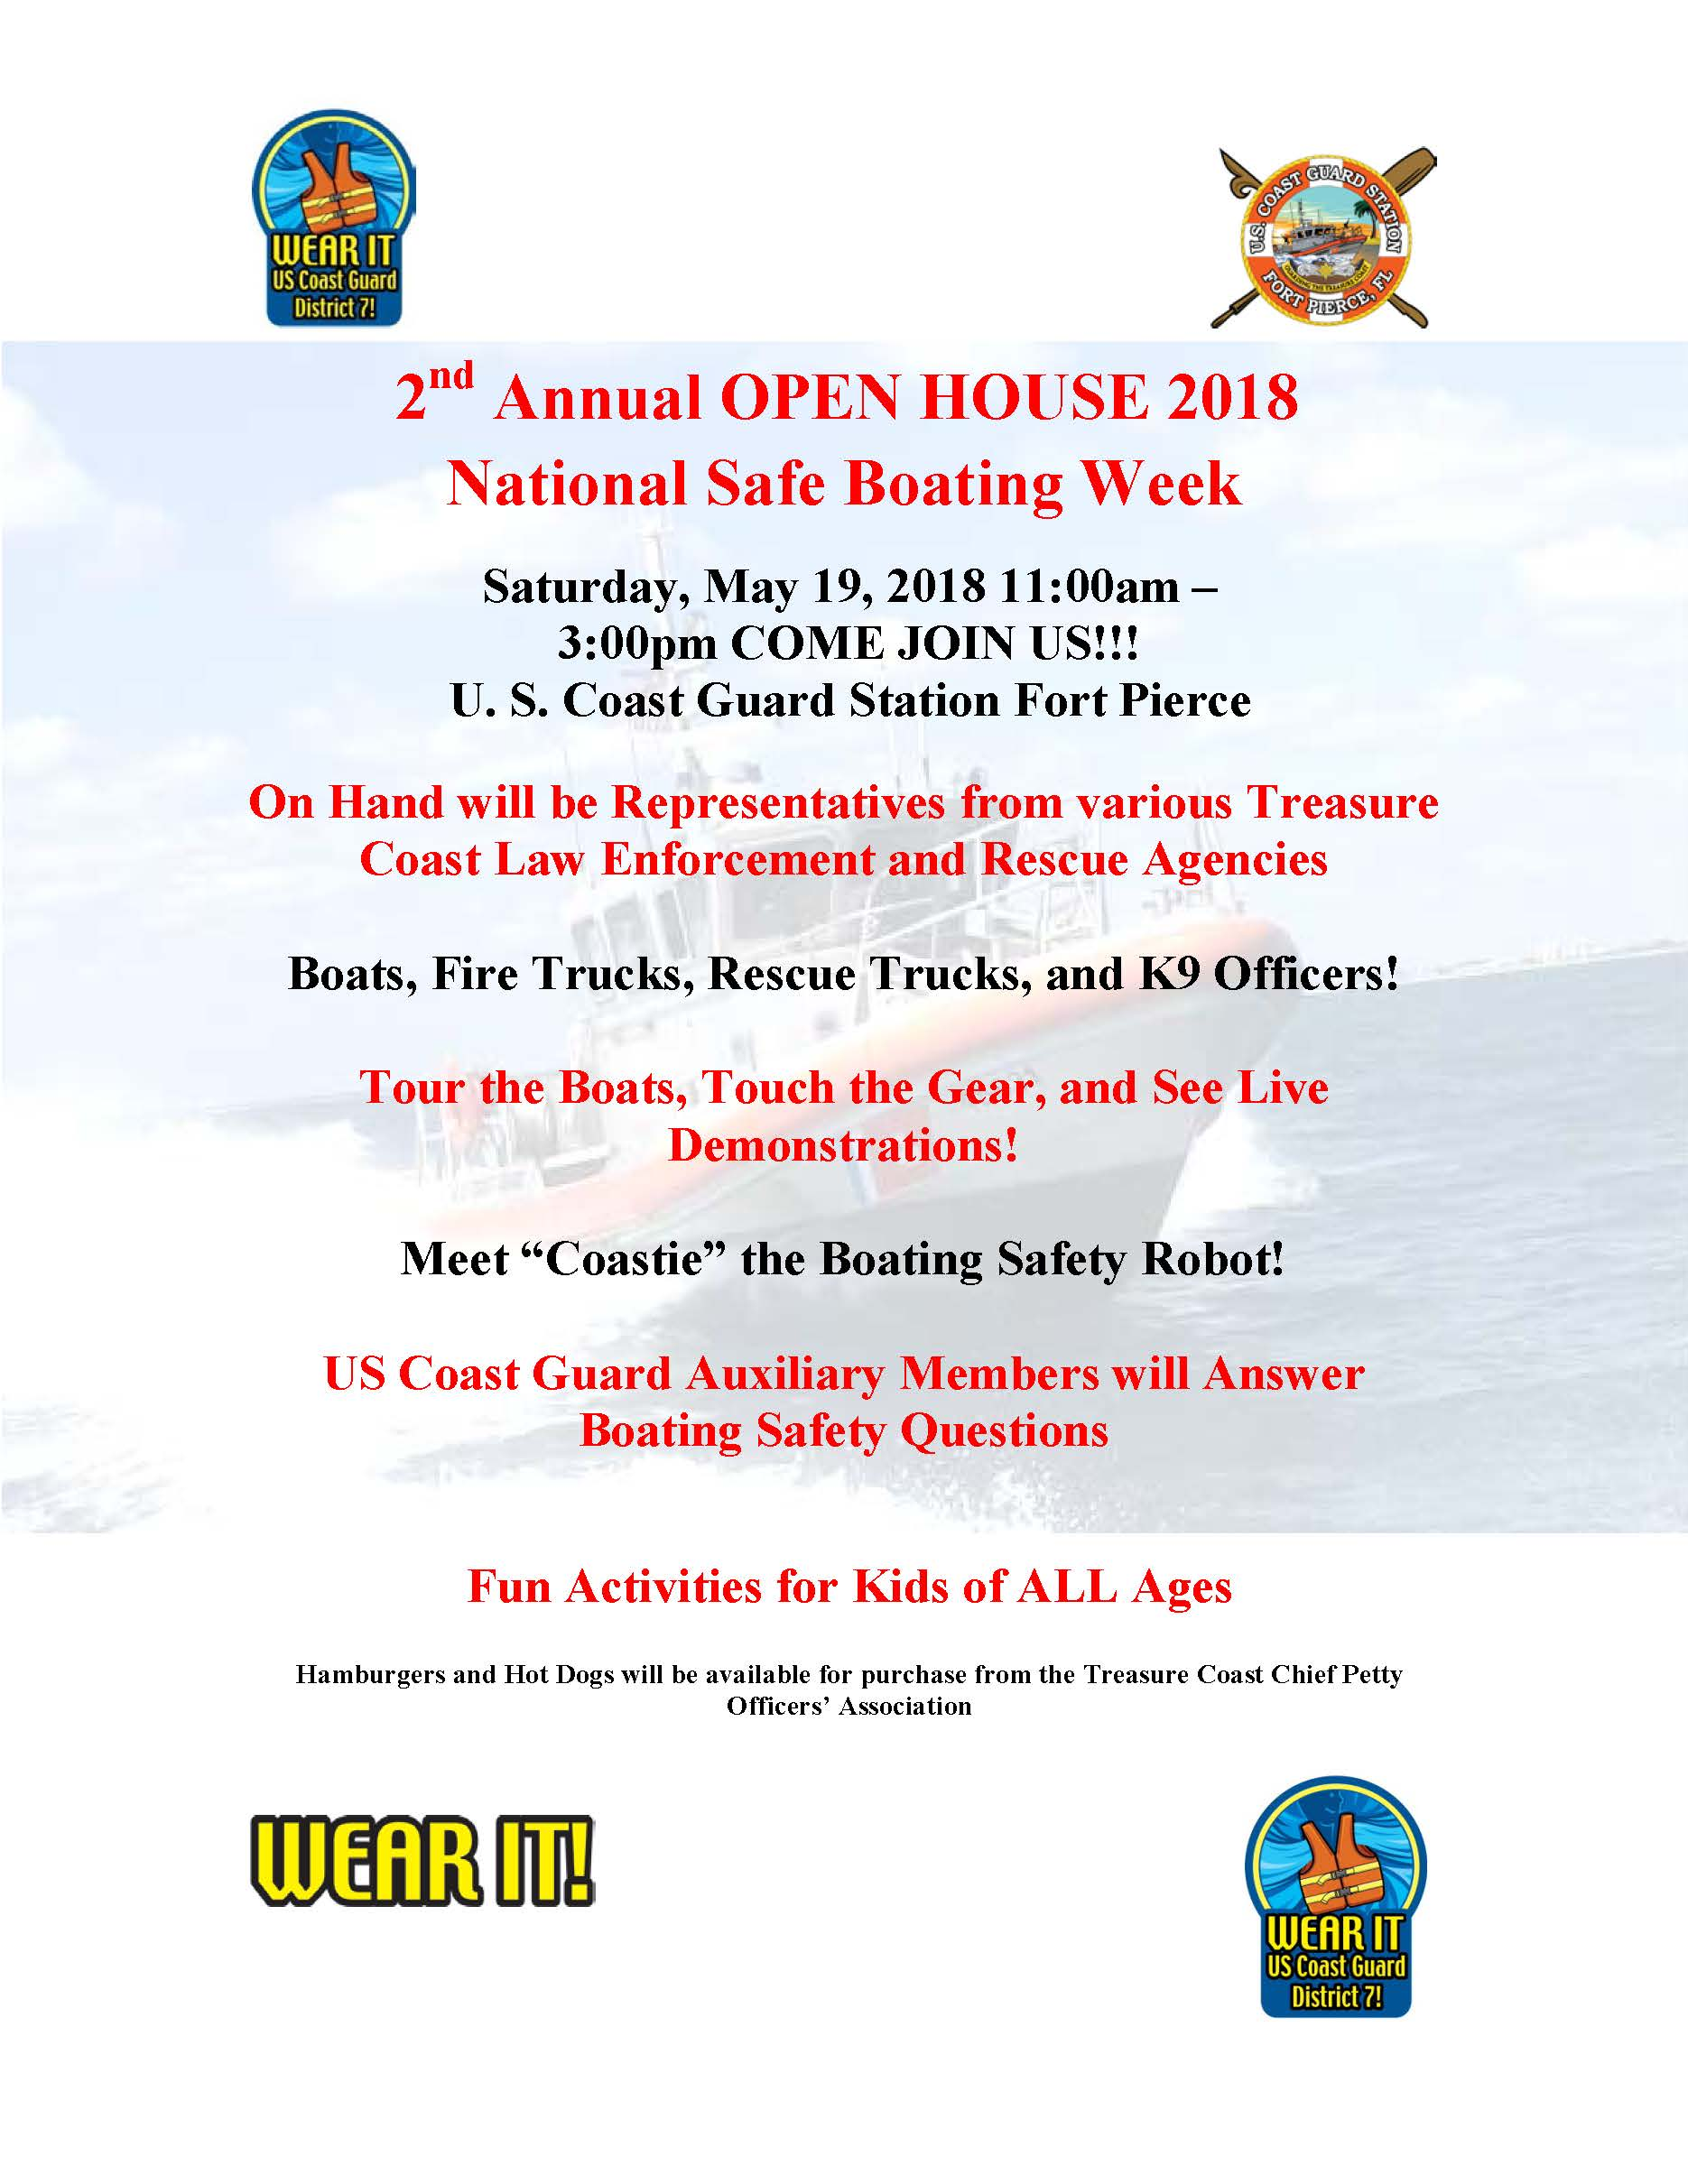 2nd Annual OPEN HOUSE 2018 National Safe Boating Week